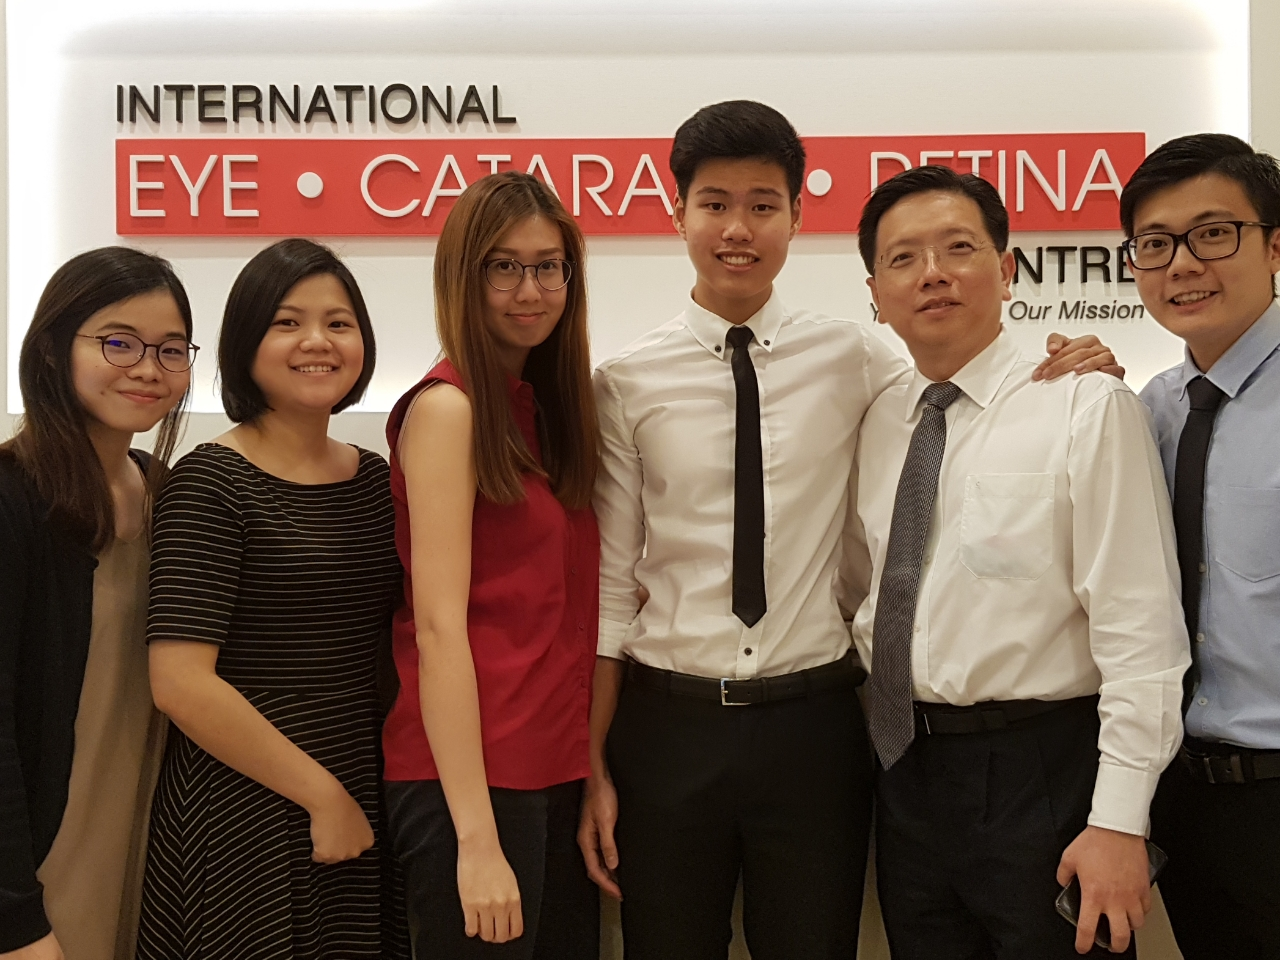 I (third from R) had a great time observing Dr Au Eong Kah Guan (second from R) and his optometrists (L-R) Ng Shu Yi, Olga Aprianti Lee, Lee Hui Xin Leanne and Chong Wee Hou during my attachment at International Eye Cataract Retina Centre